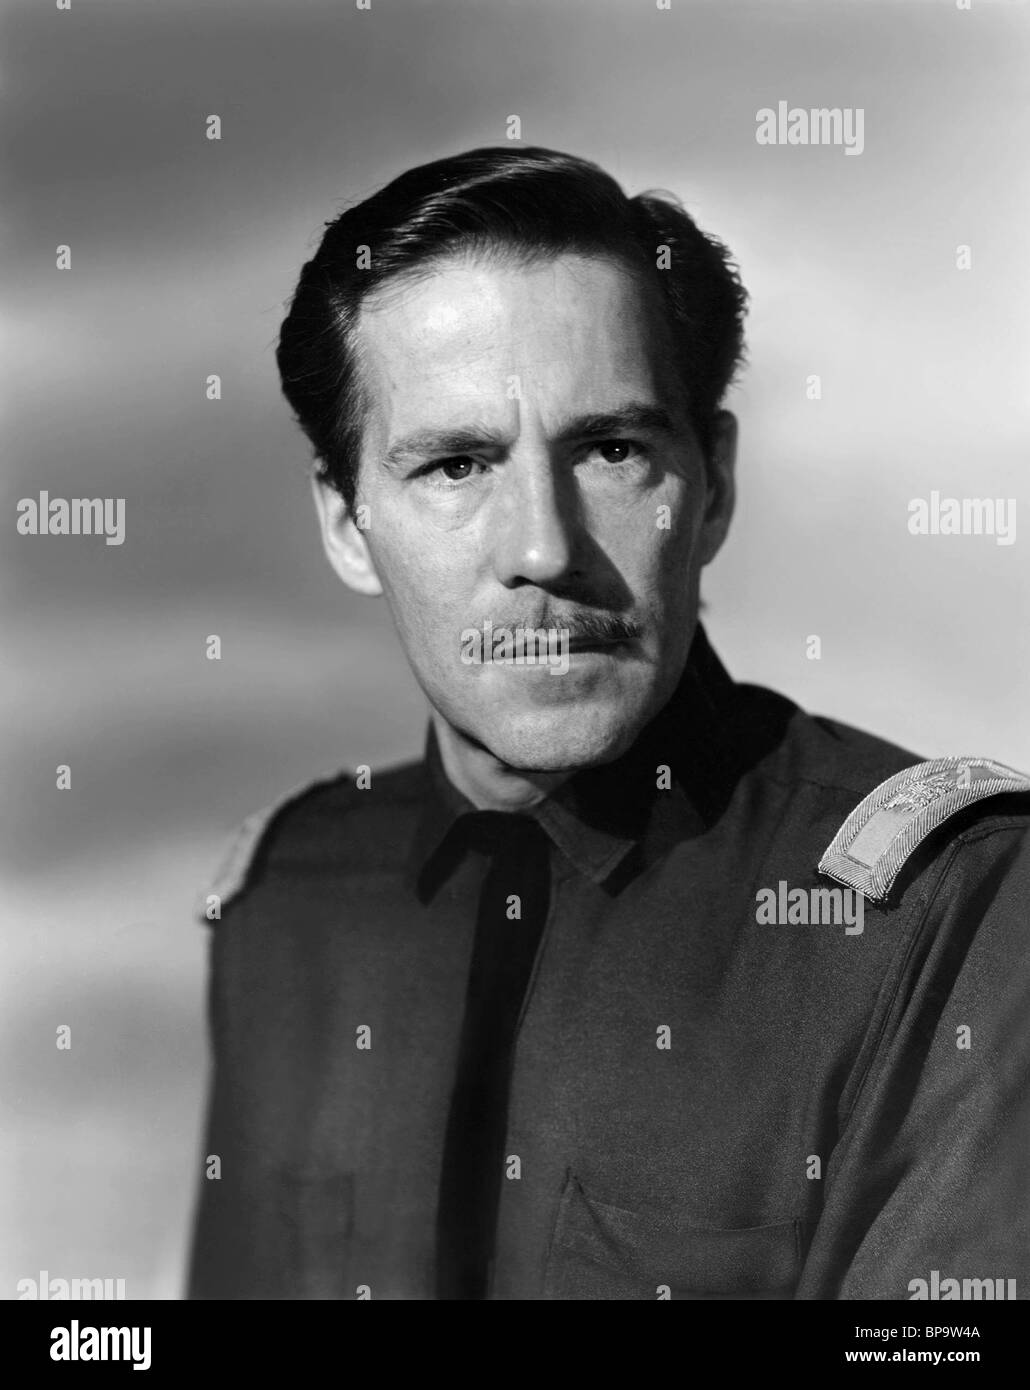 HUGH MARLOWE STAND AT APACHE RIVER (1953) - Stock Image